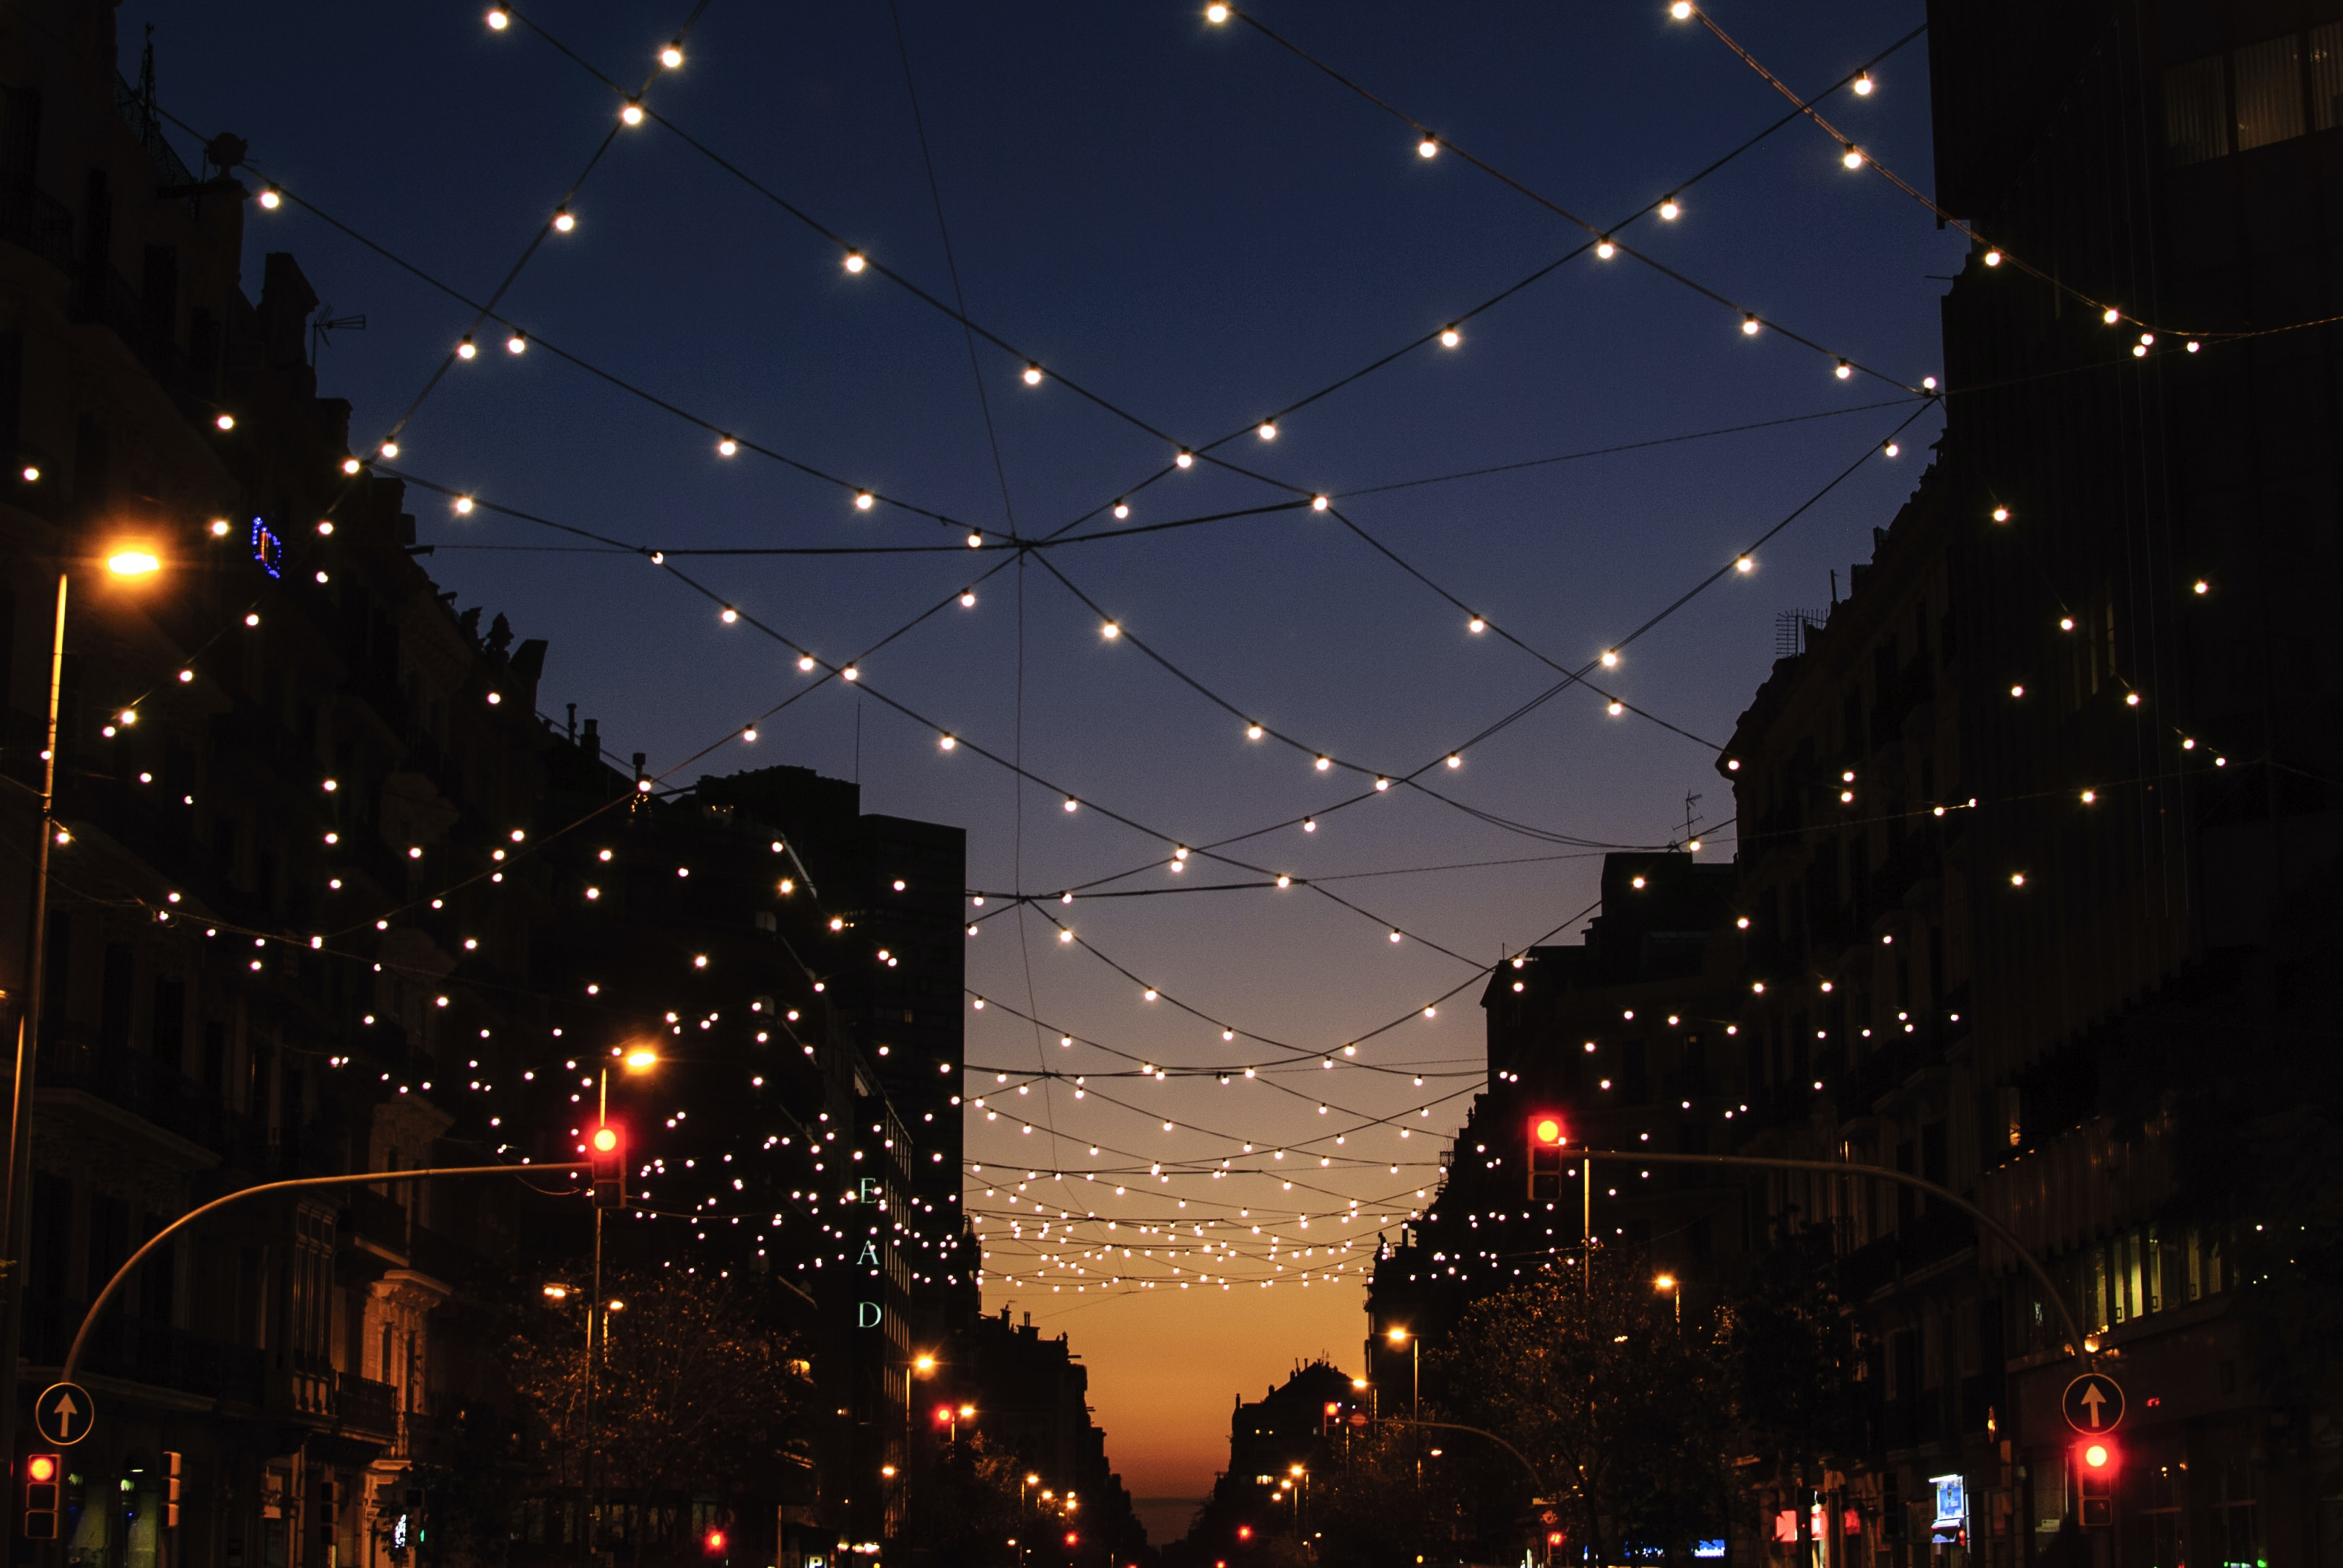 string lights during night time